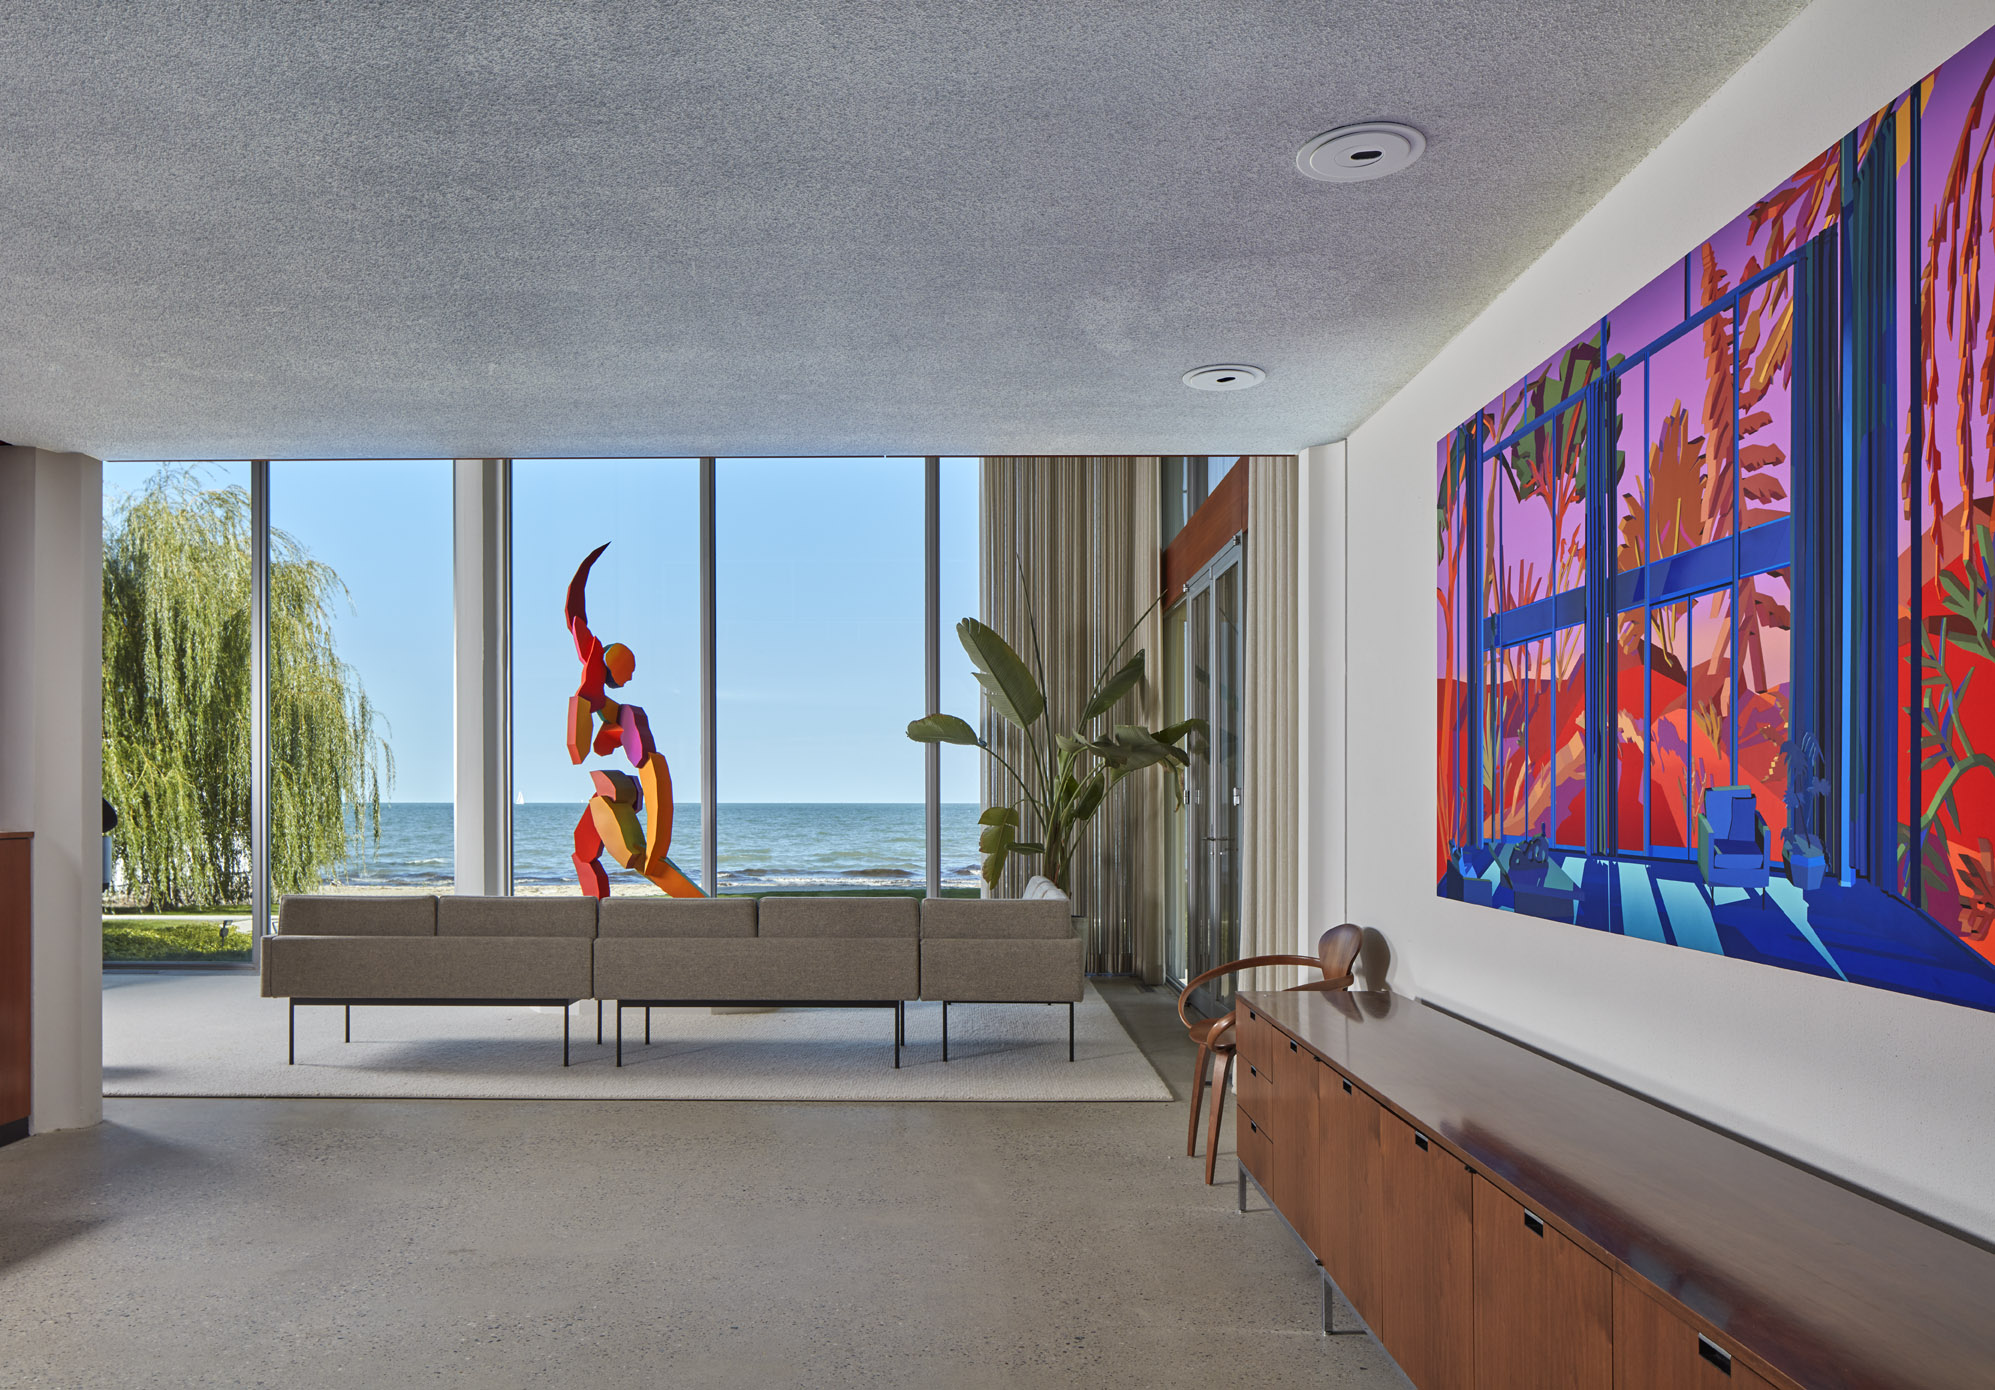 View of a lake from a window with a colorful sculpture in Virtual Window